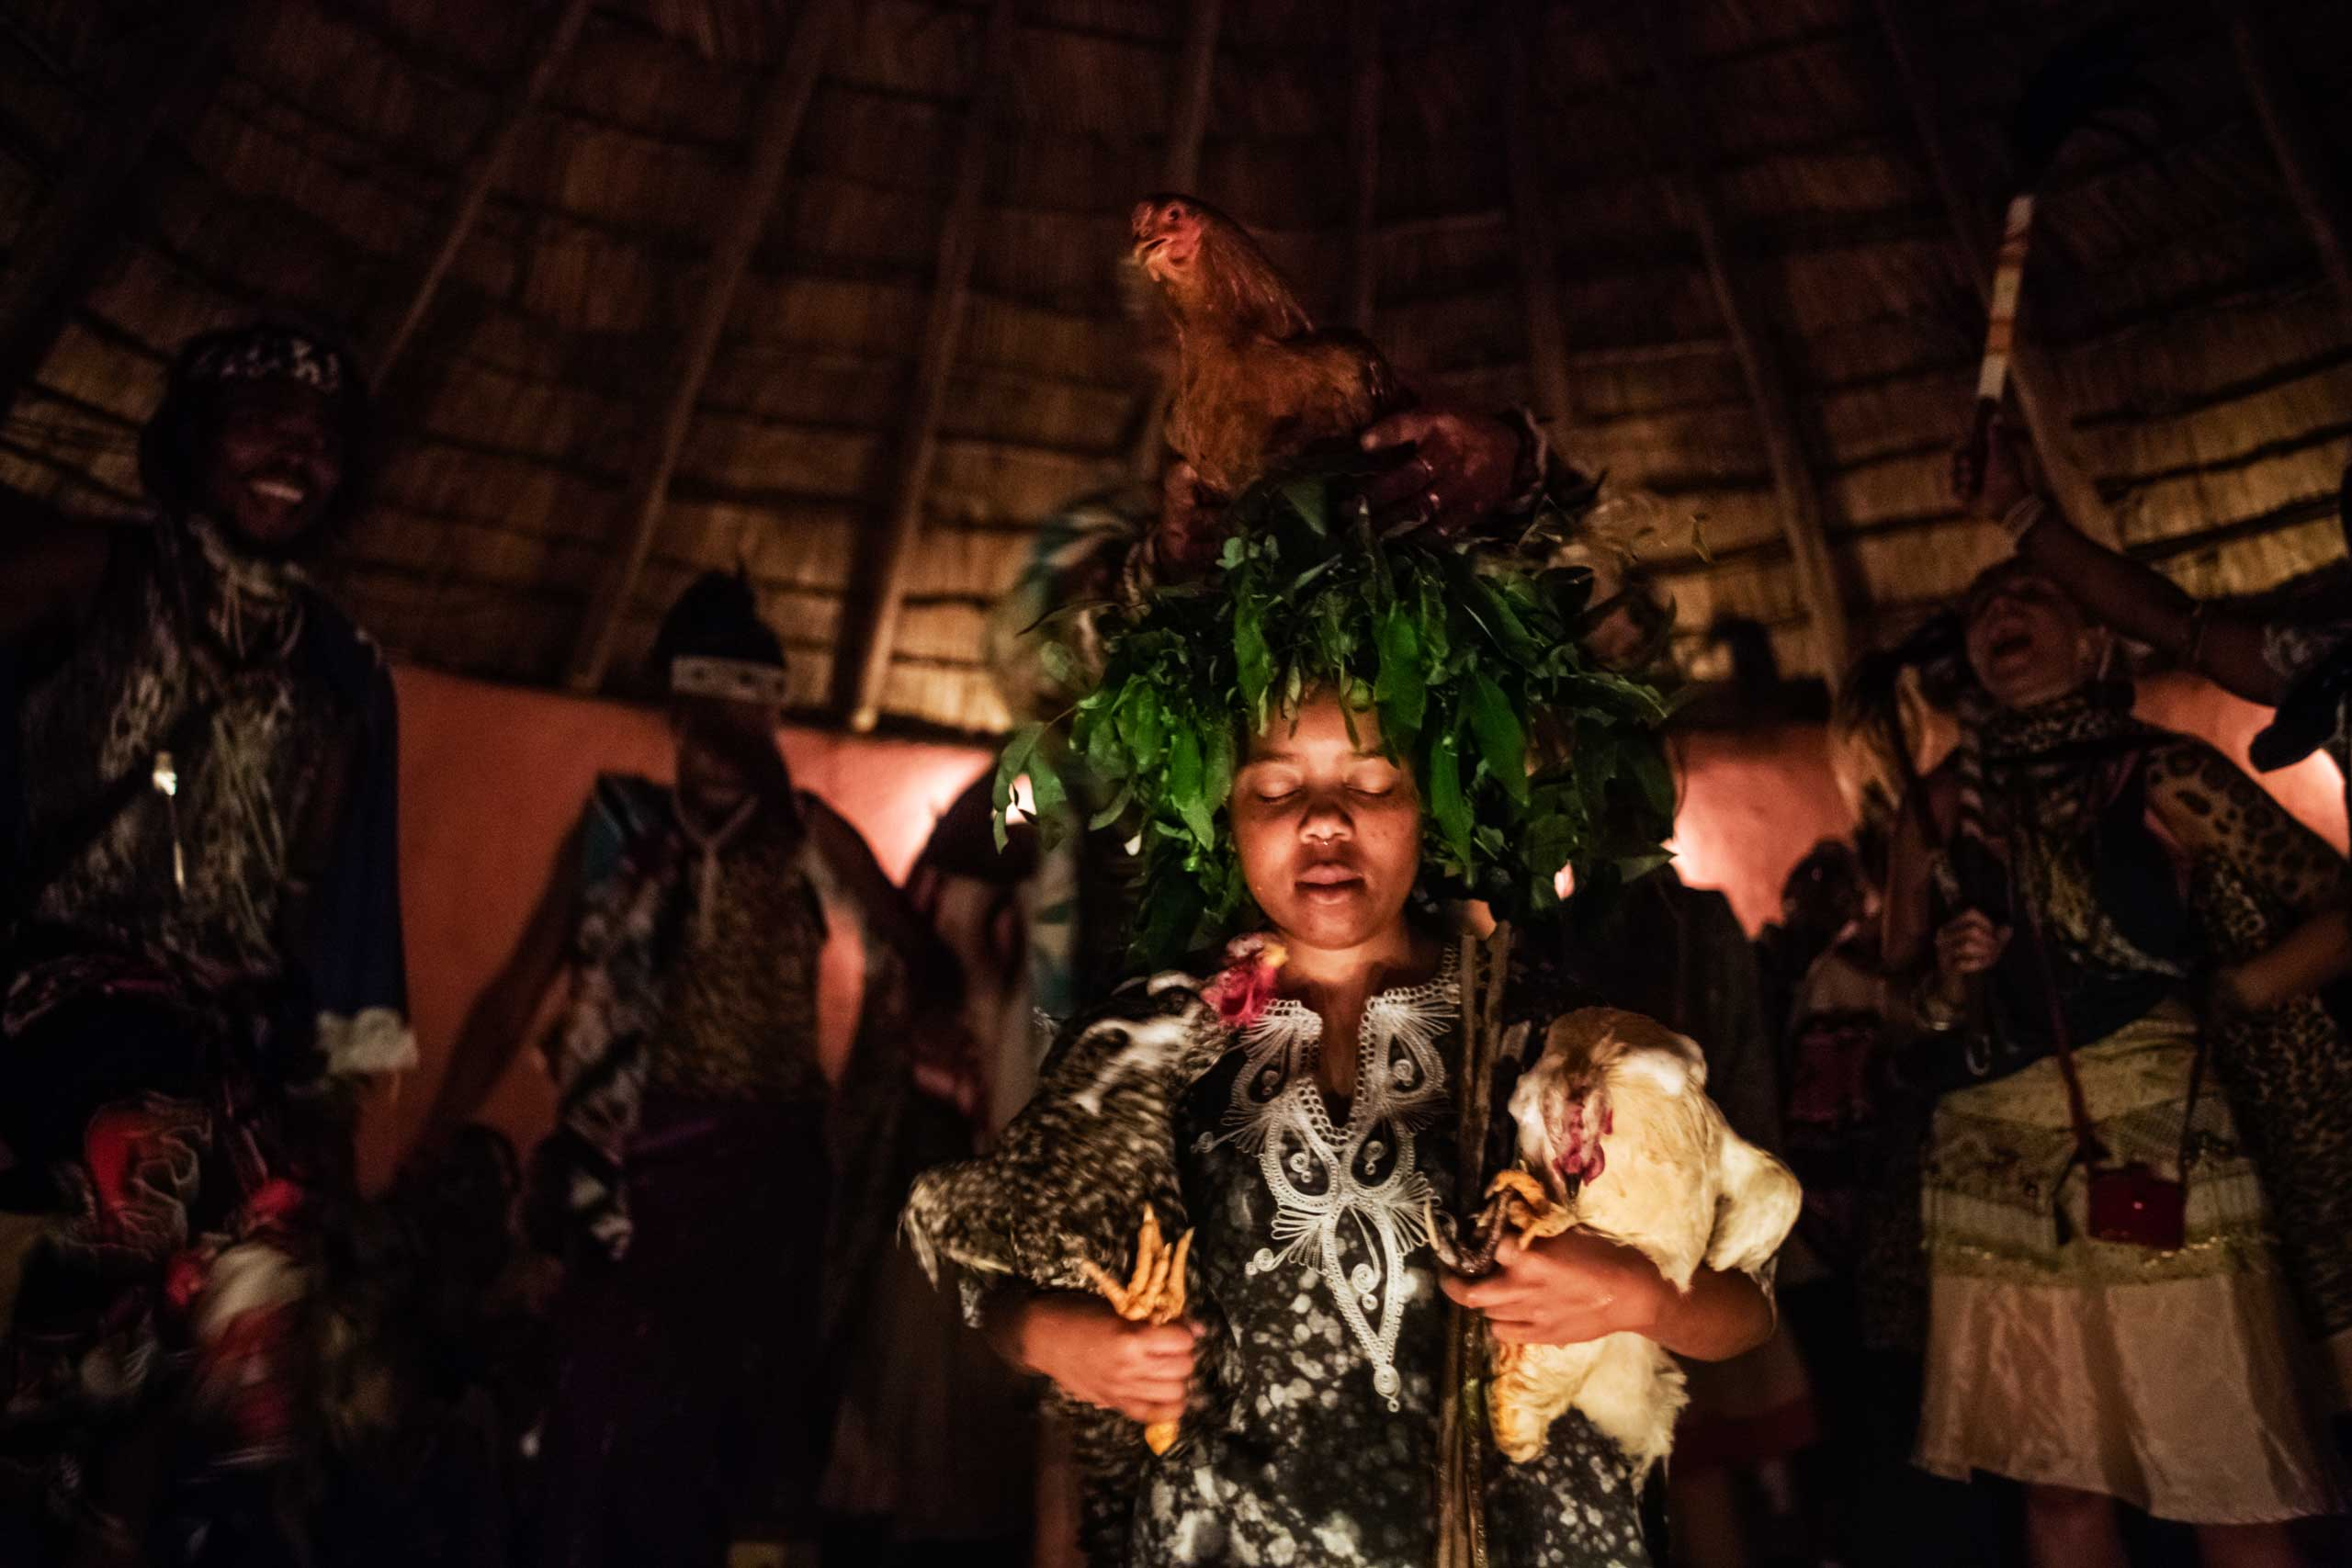 During her 'ingenisa', the initiation ceremony to become a thwasa Gugulethu Khumalo meditates, holding two chicken under her arms while a third one sits on her head, accompanied by sangomas' singing and dancing in the background on Nov. 28, 2014 in Mdakane, Lusikisiki District, South Africa.